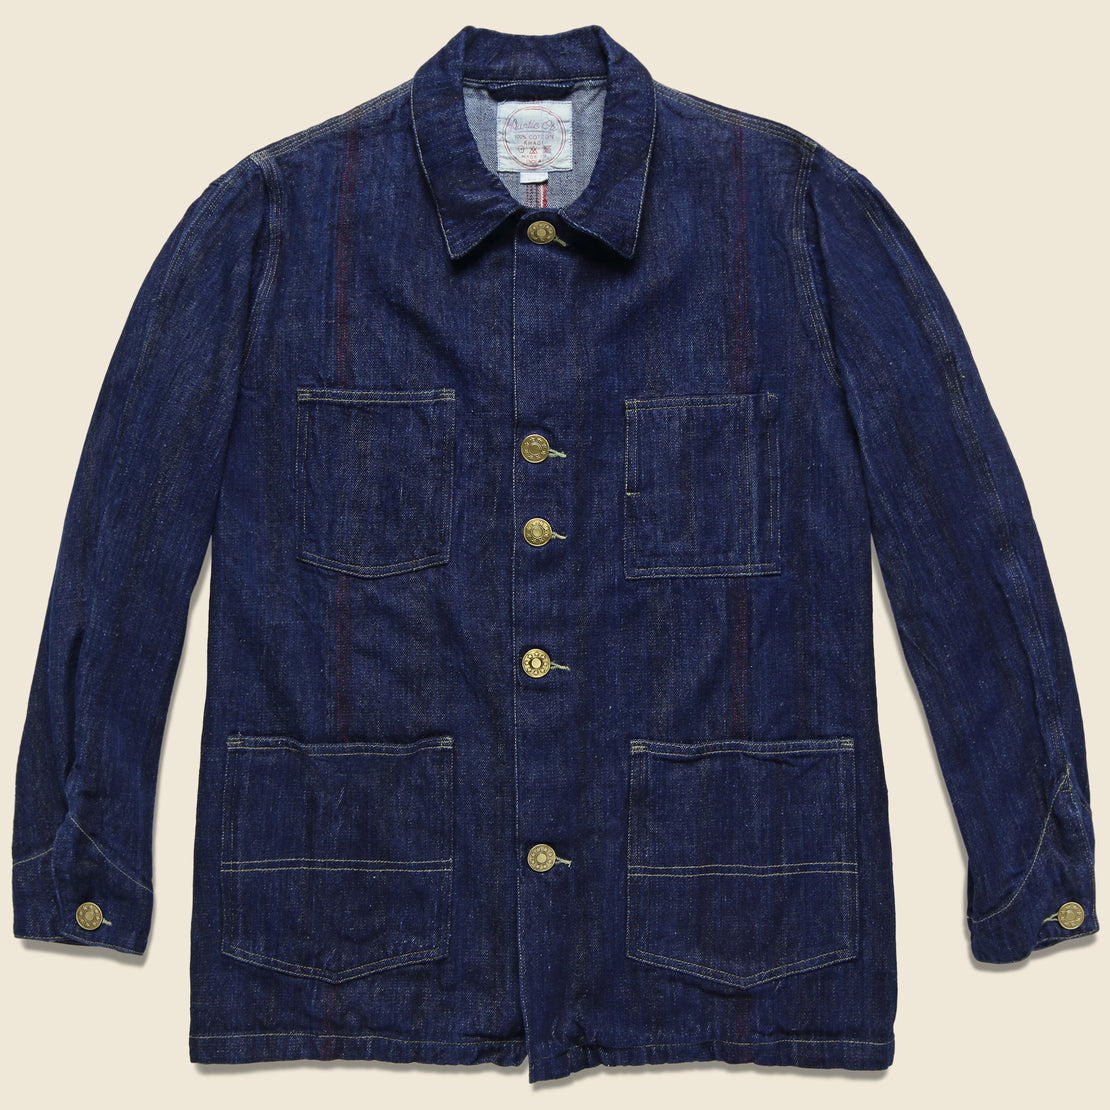 Auntie Oti Selvedge Denim Jacket - Indigo